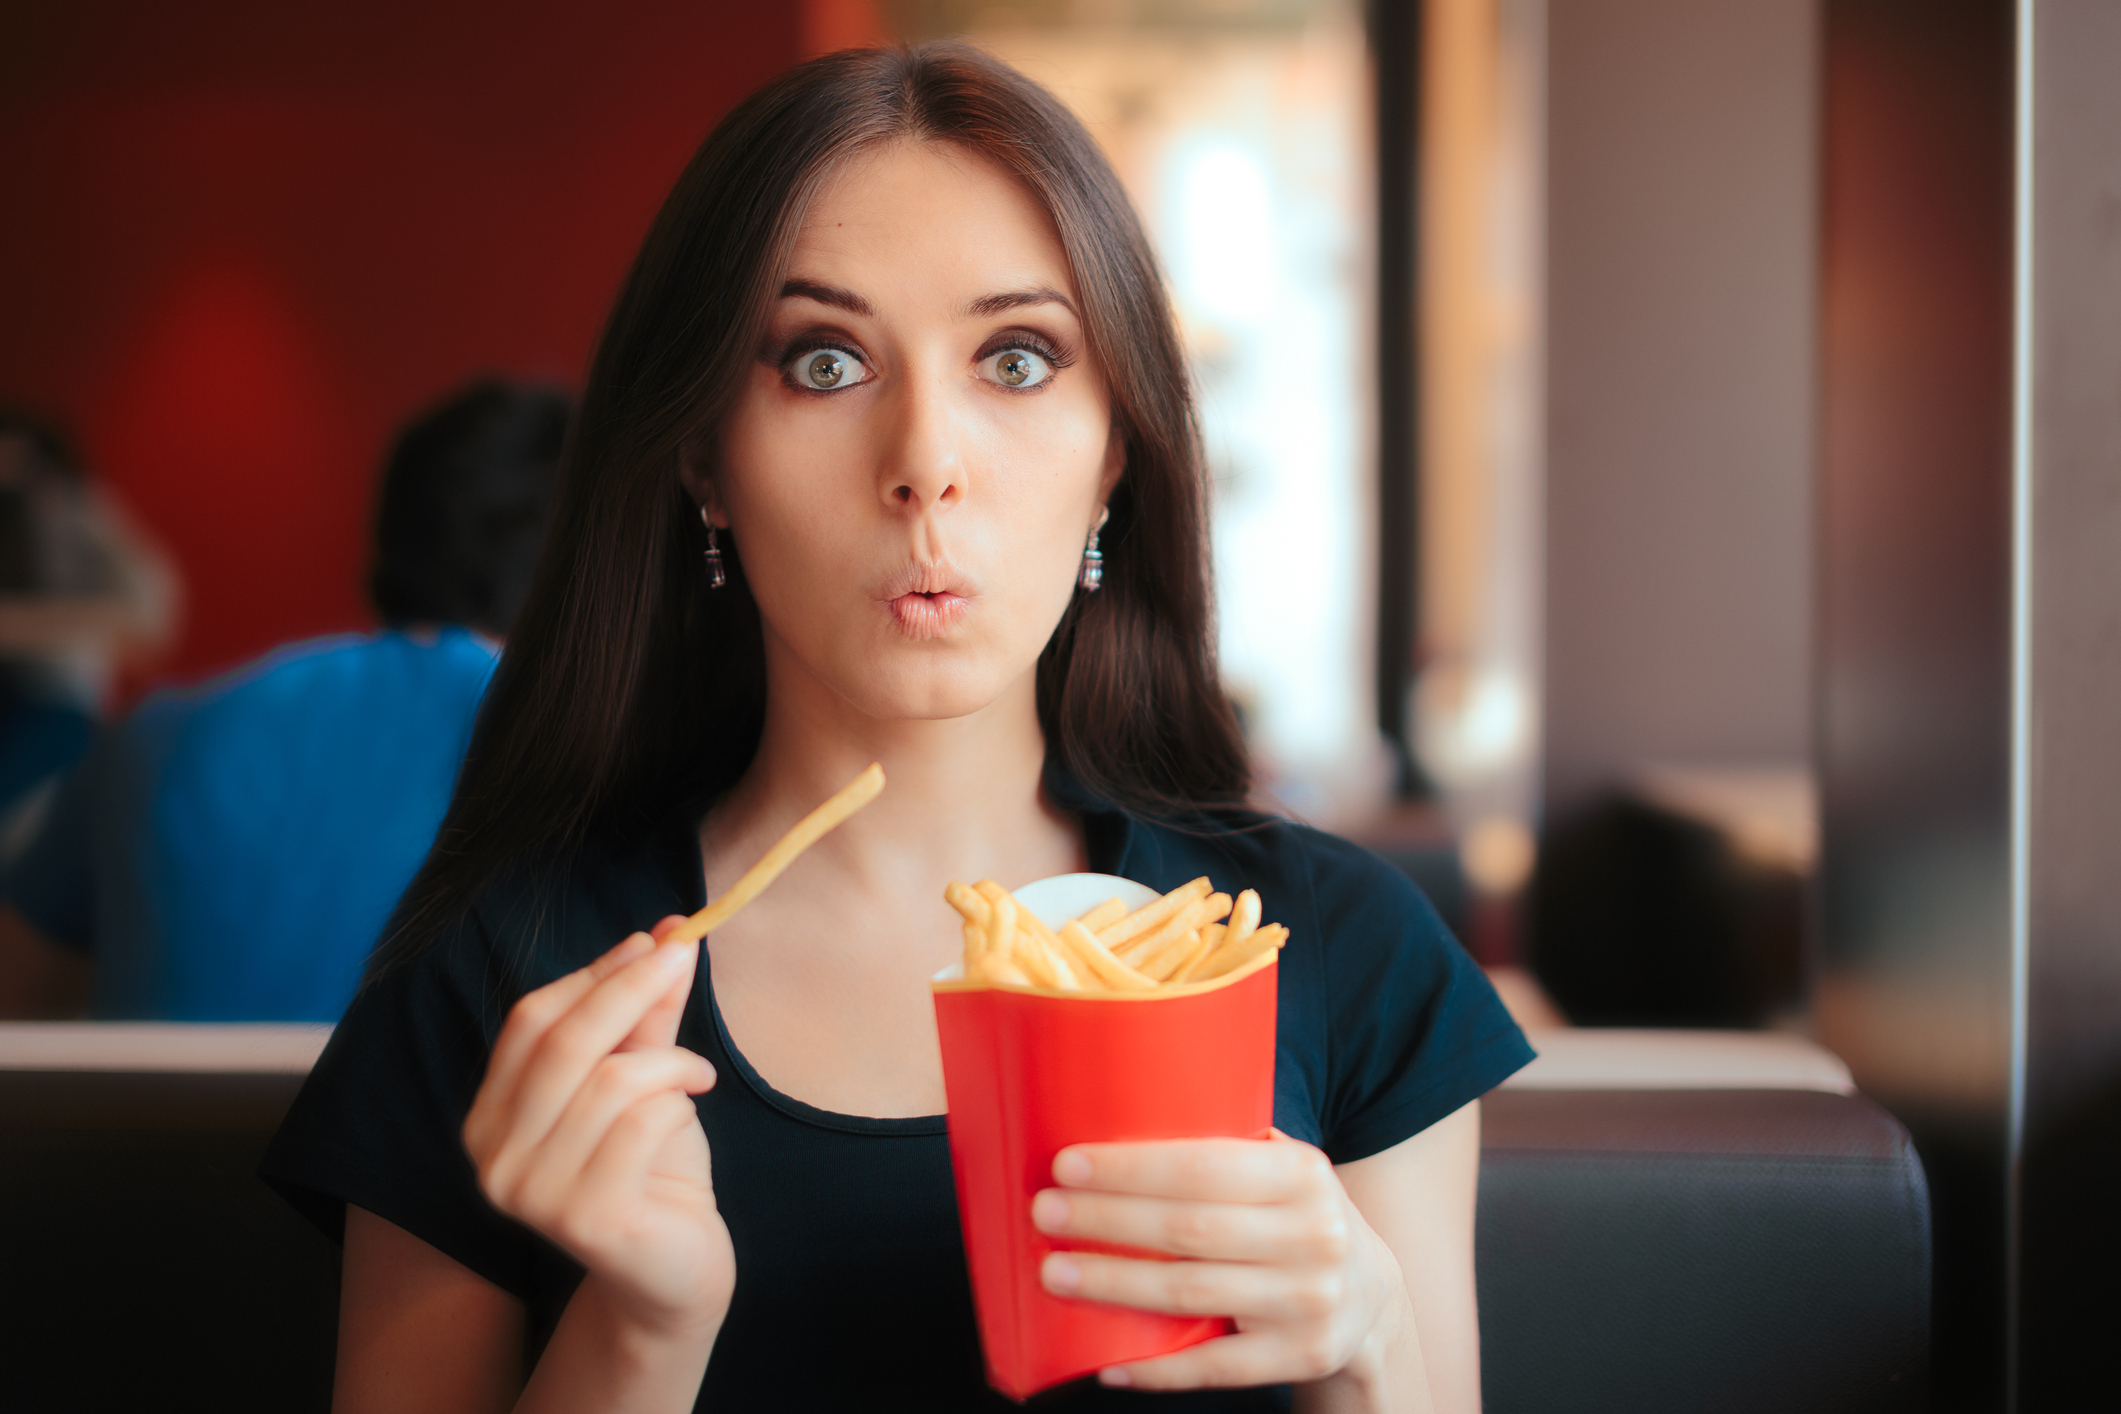 How much are those french fries hurting your heart?